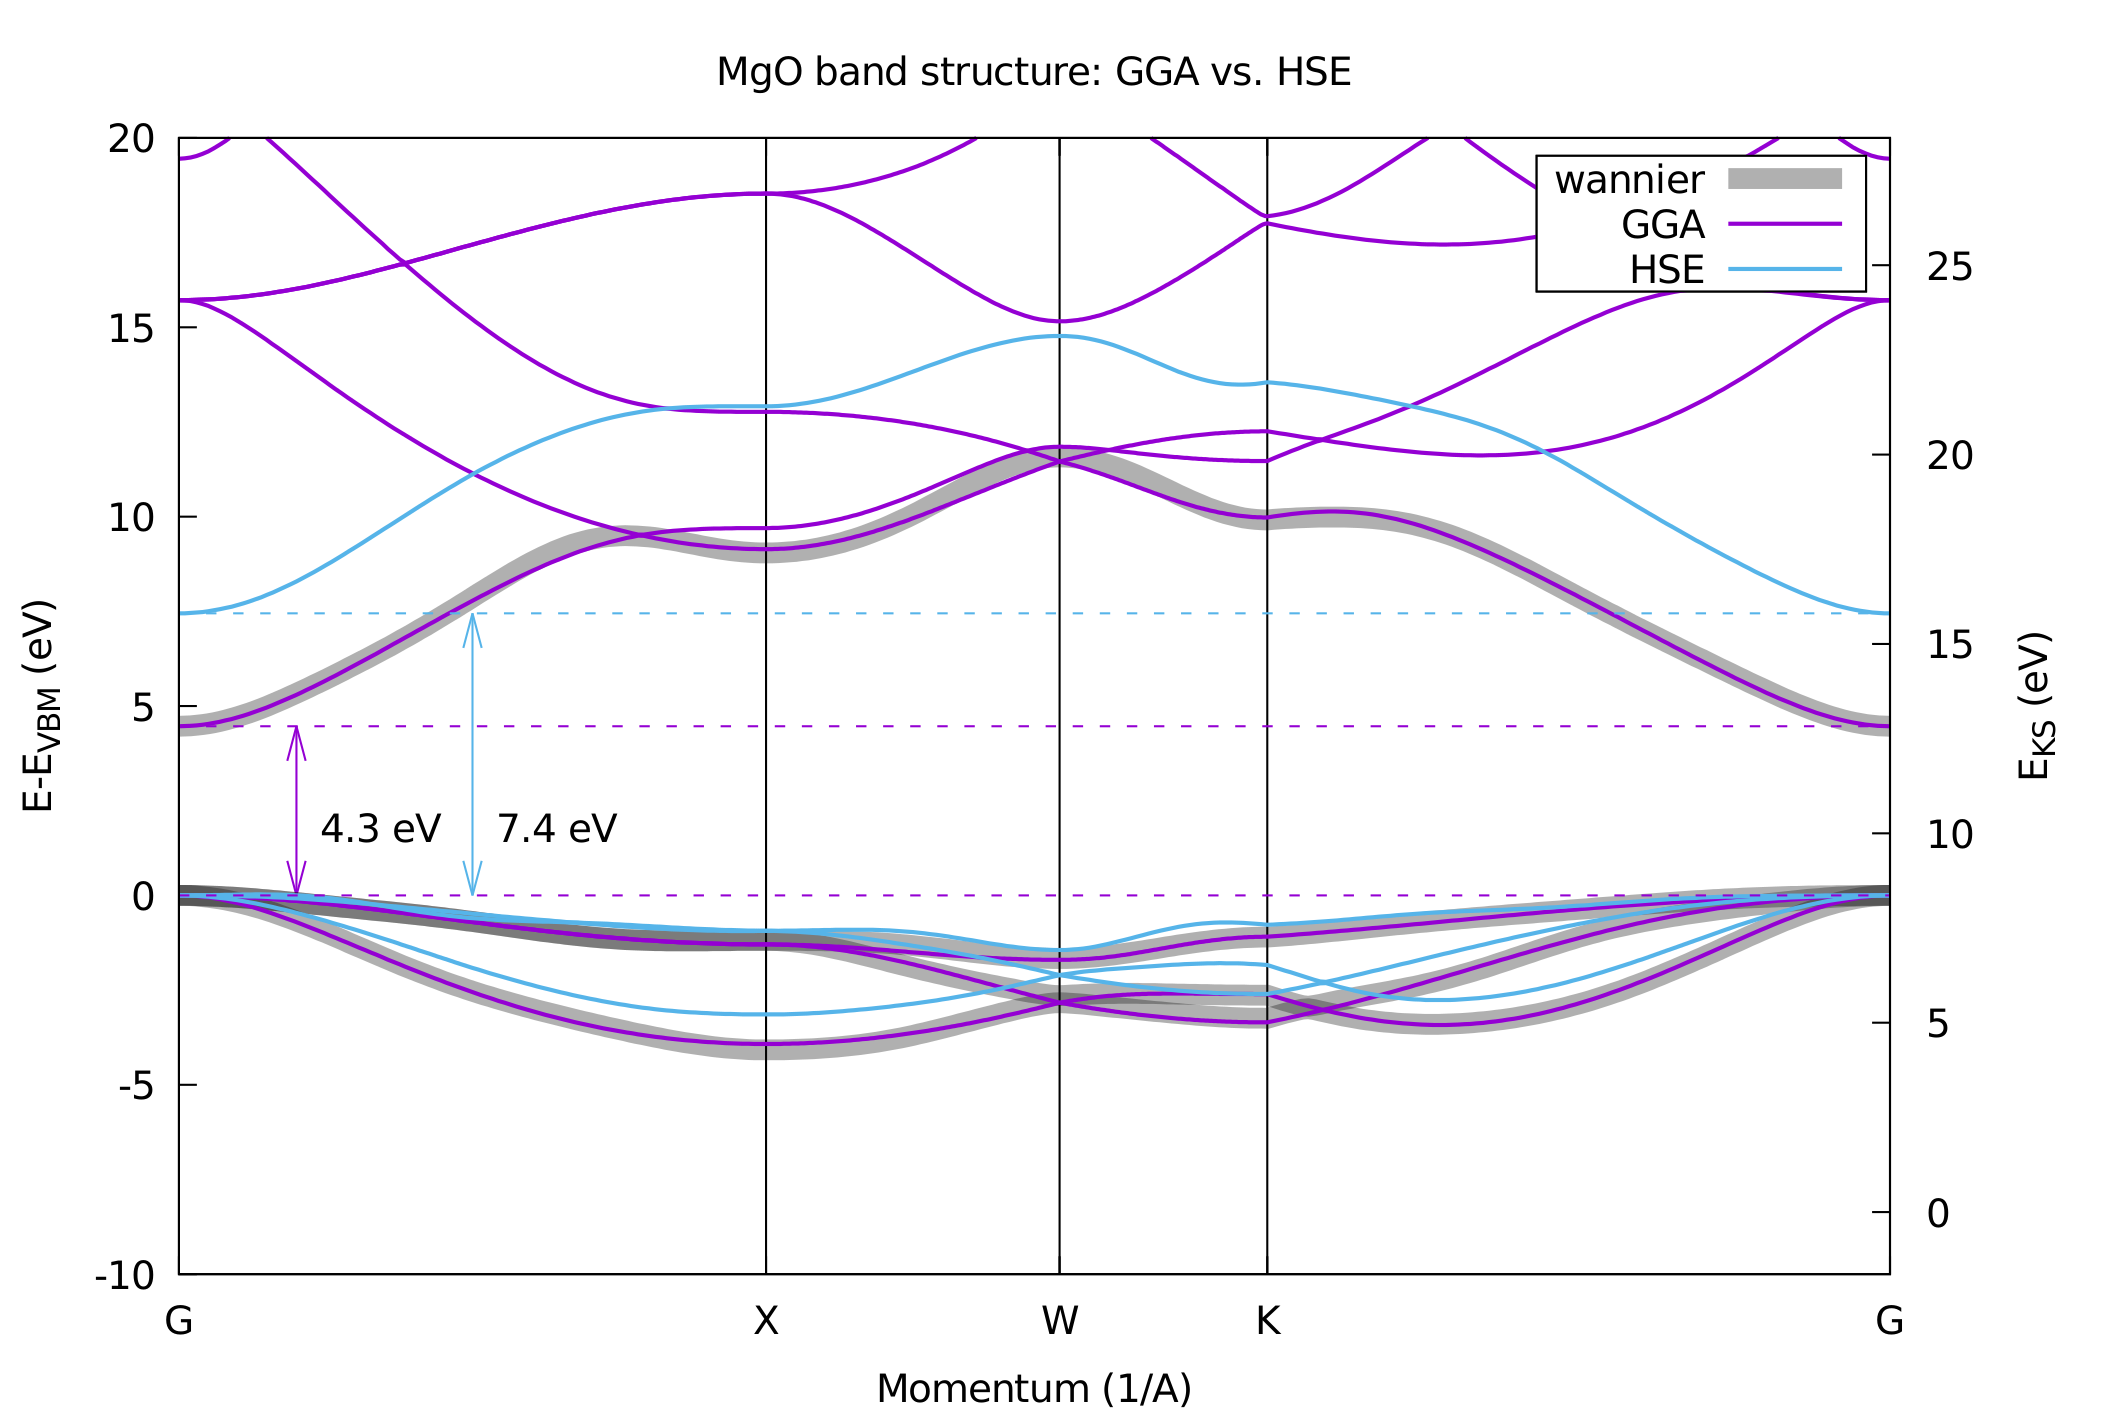 Band structure calculations in QE using hybrid functionals